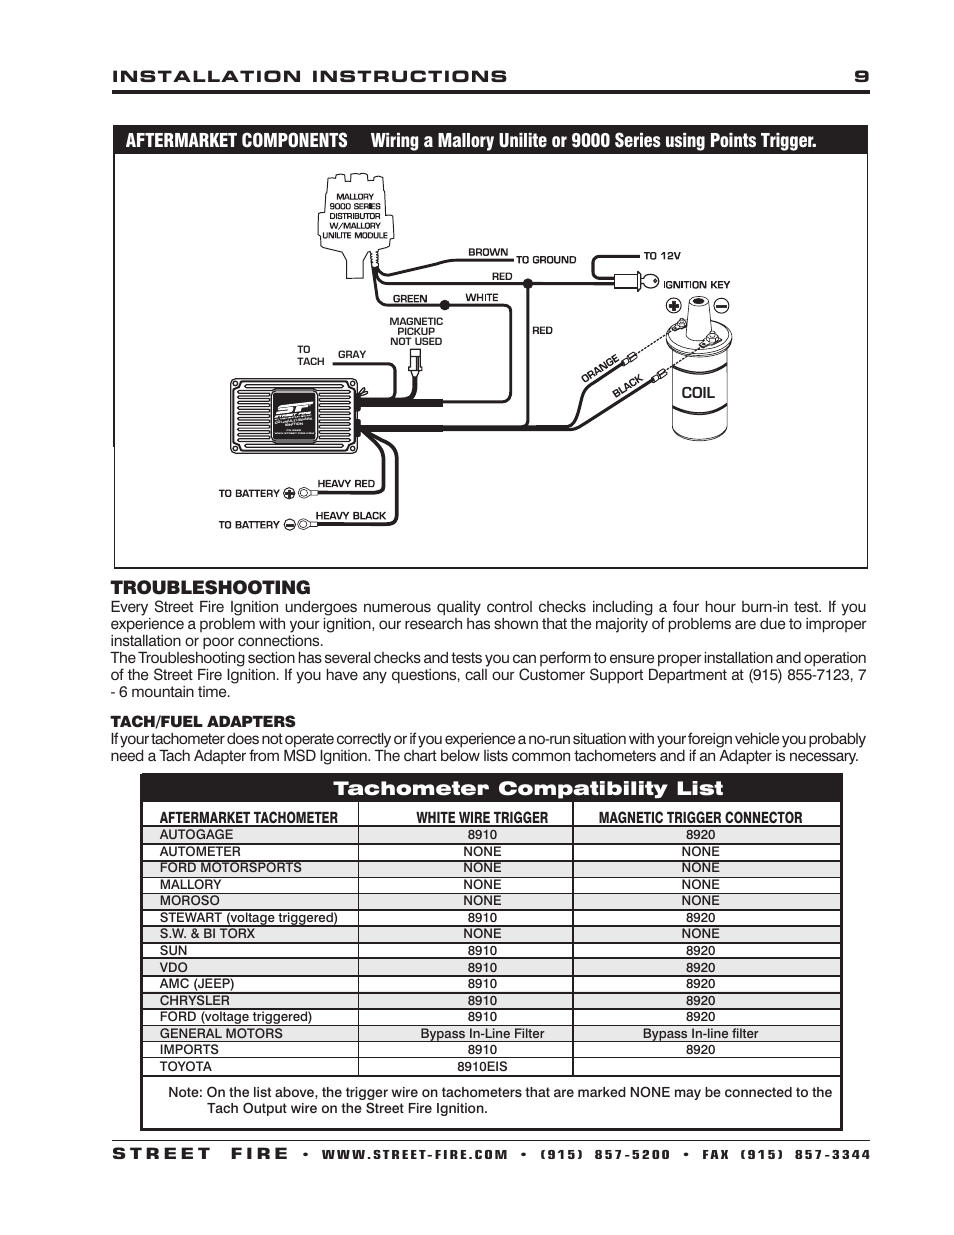 Mallory Hyfire 6al Wiring Diagram 33 Images Msd Ignition 6btm High Fire Diagrams Dist 5520 Street Control Installation Page9resize6652c861